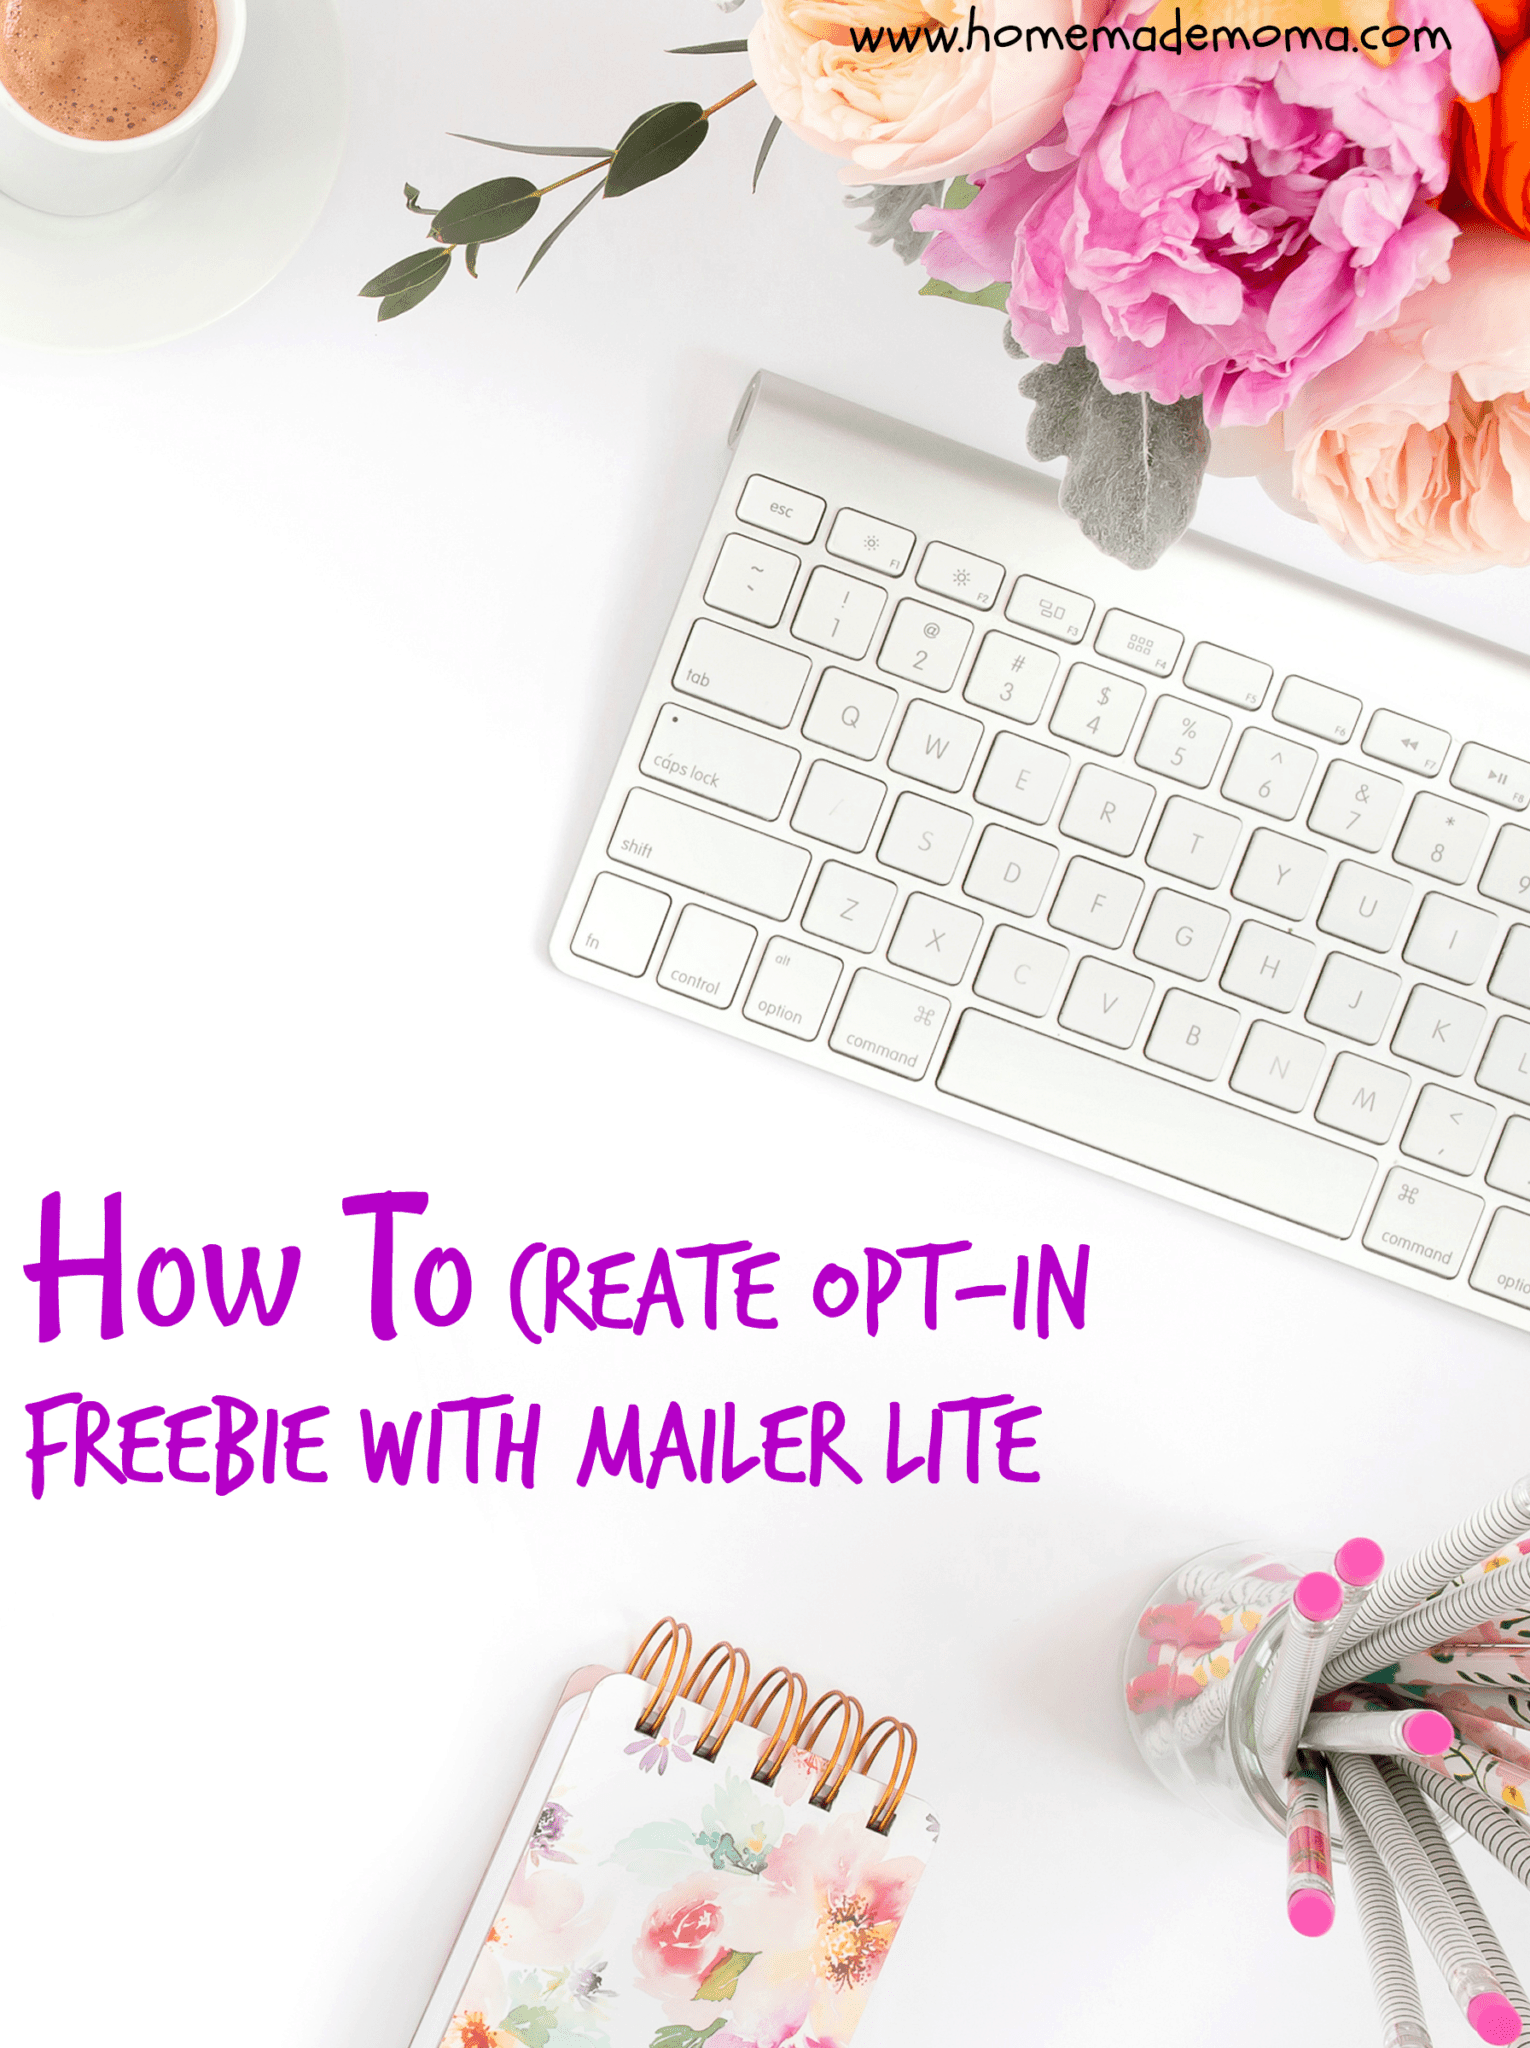 How to create opt-in freebie with mailer lite